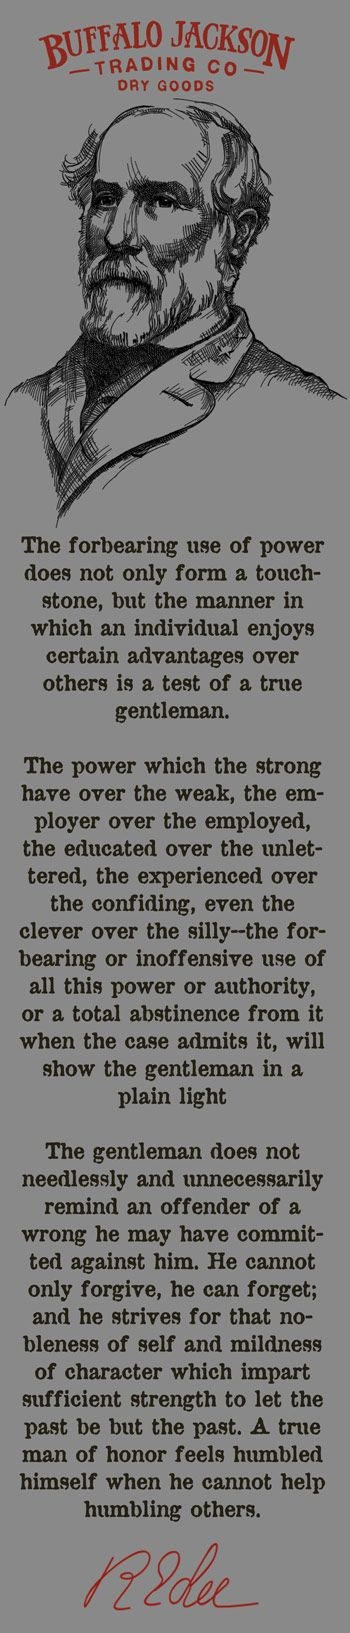 Robert E Lee and the Definition of a Gentleman